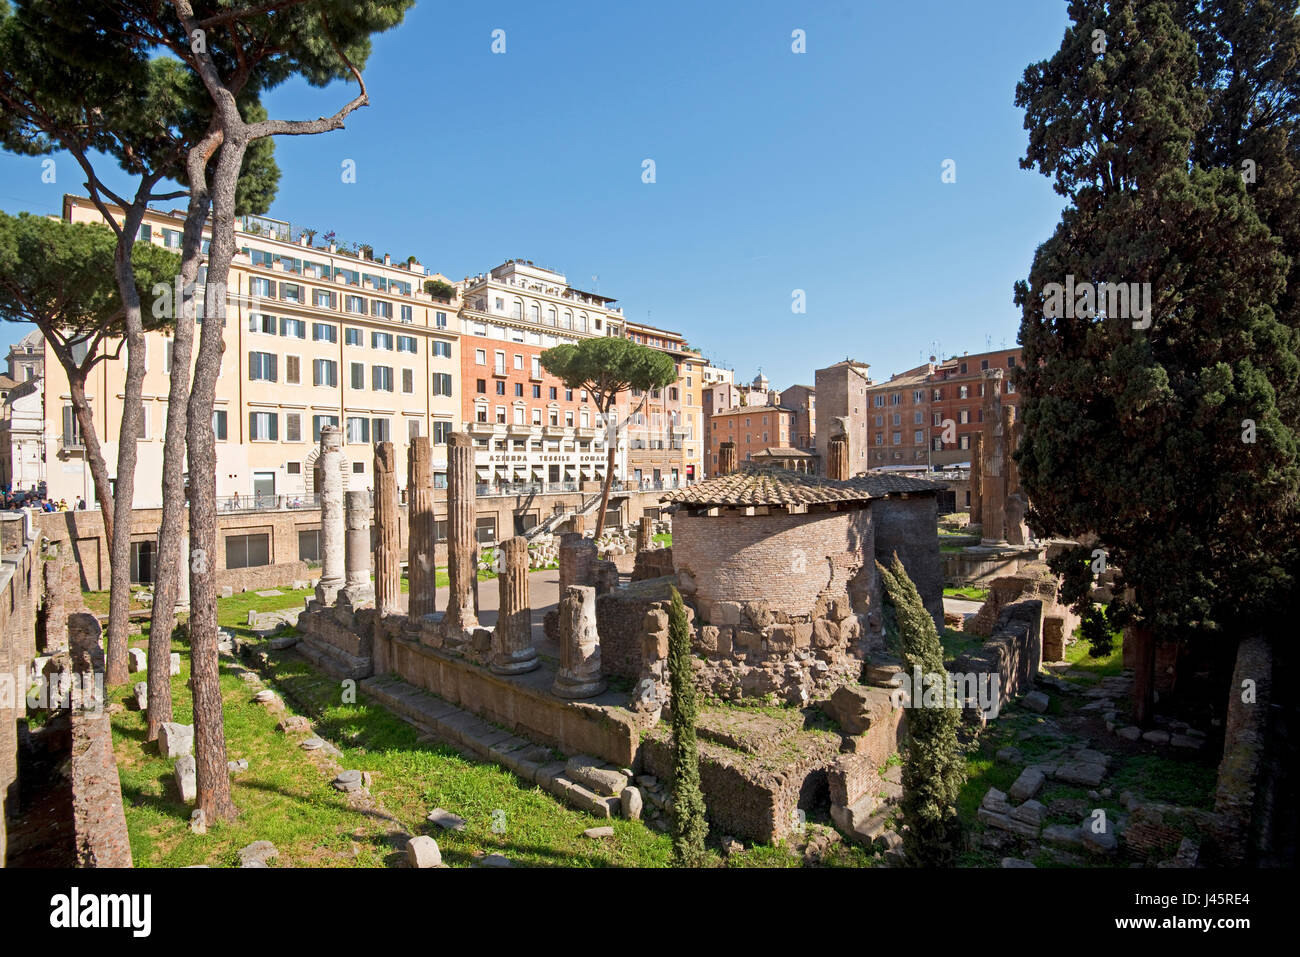 Largo di Torre Argentina in Rome on a sunny day with blue sky. - Stock Image